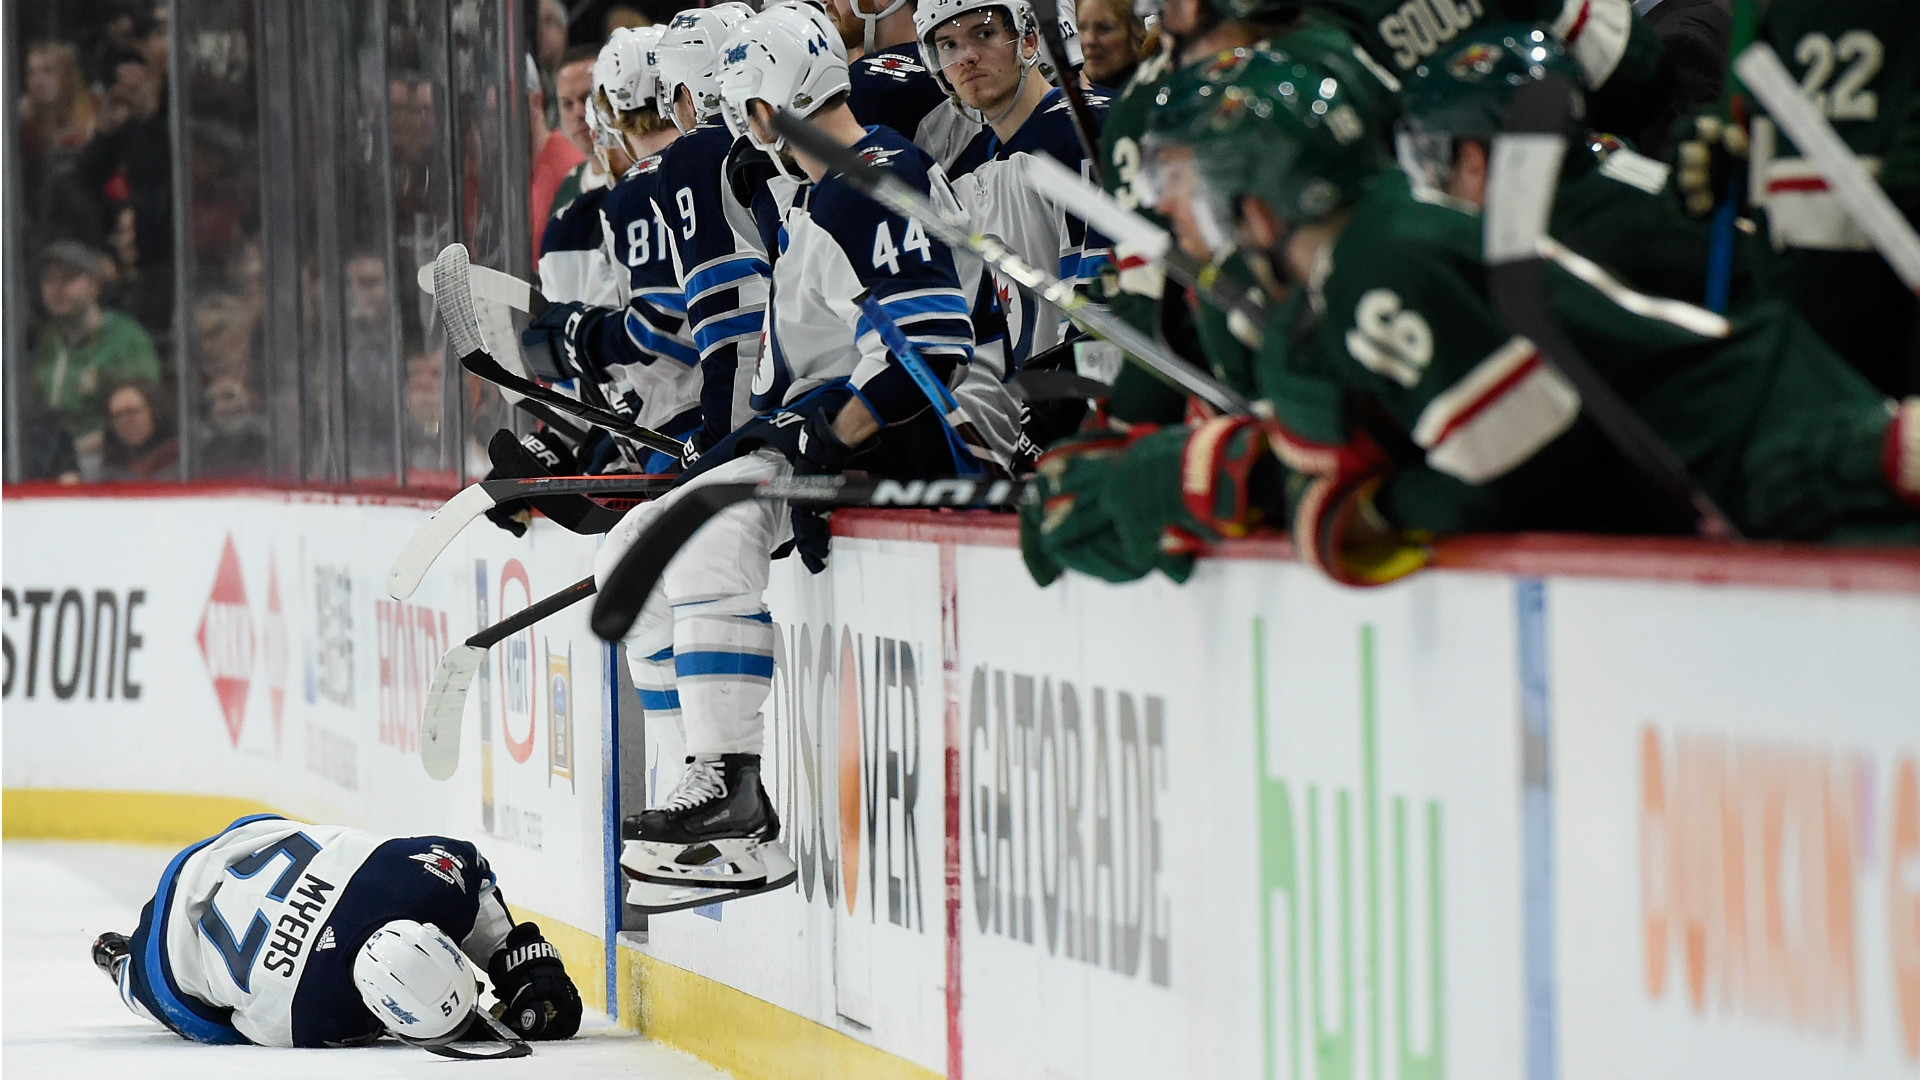 Jets vs. Wild Game 3: Full highlights, final score and more